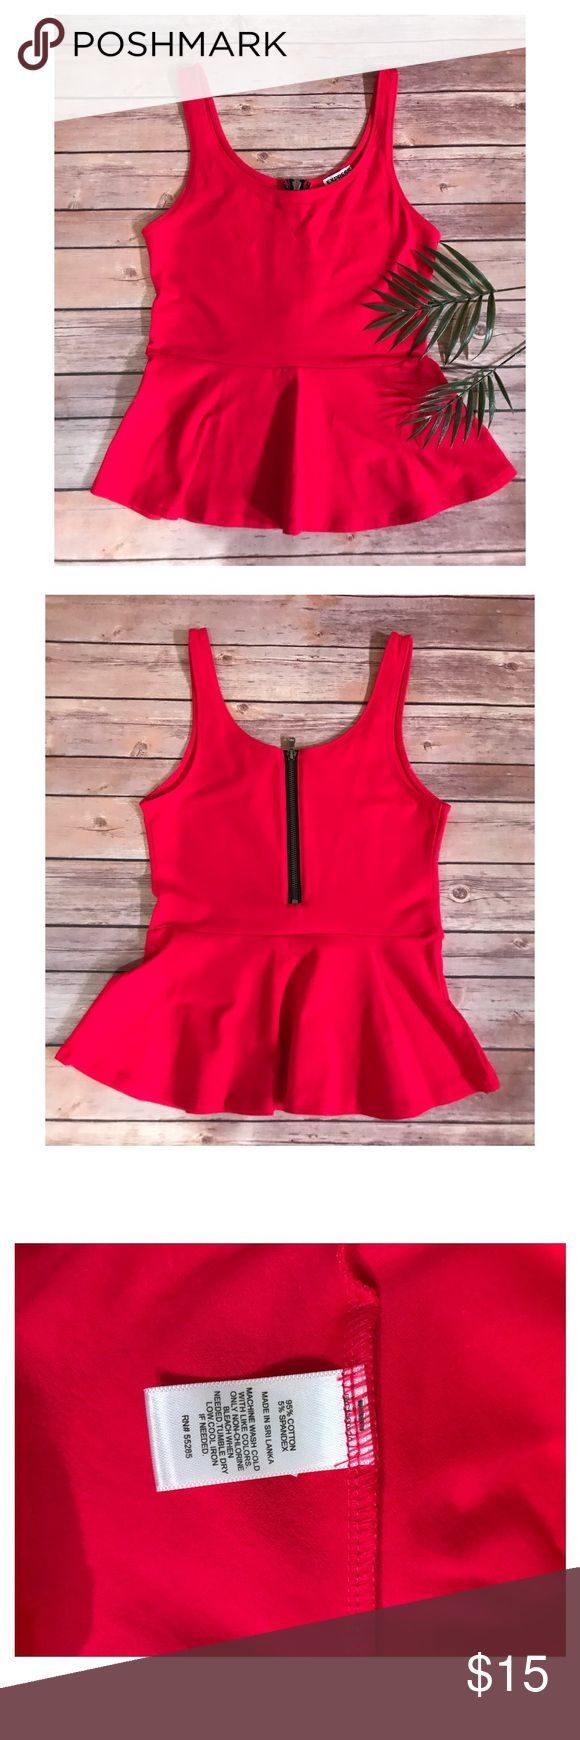 EXPRESS Hot Pink Peplum Top Express hot pink Peplum top! Zips down the back. Worn one time and washed. Very stretchy! Let me know if you have any questions prior to purchasing! 🤗💕 Express Tops Tank Tops